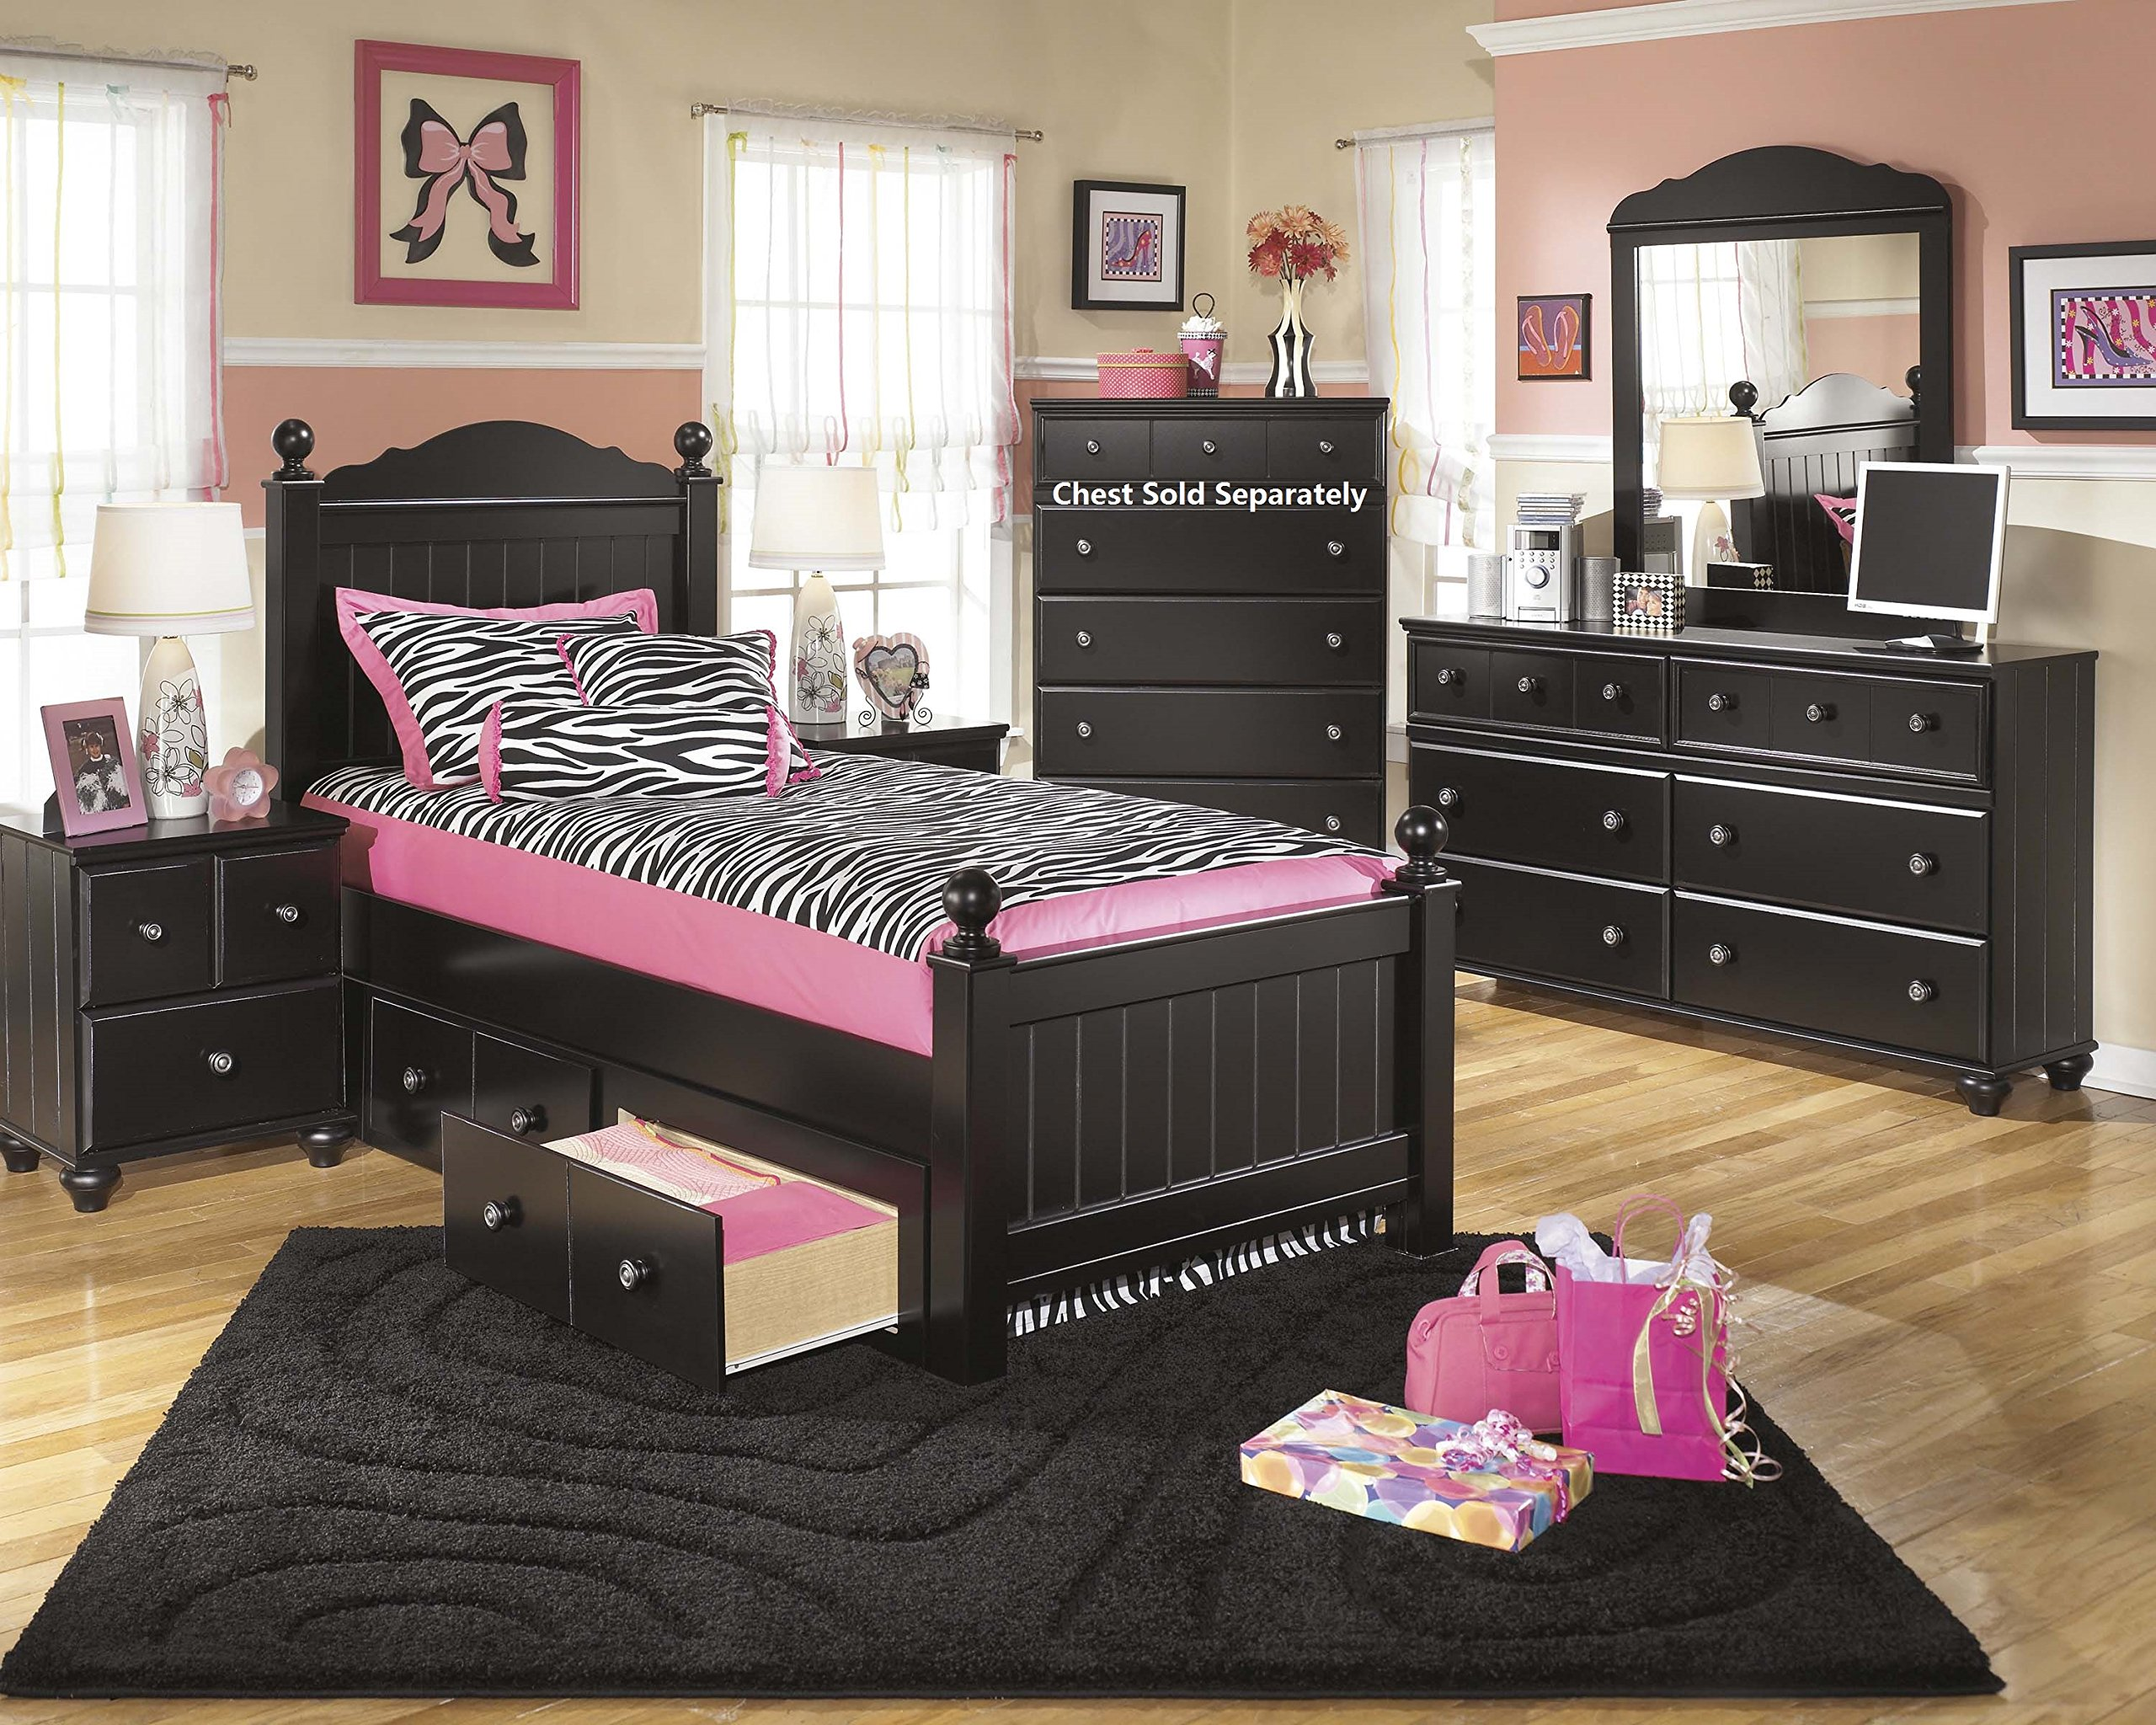 Jaidyn Youth Wood Poster Storage Bed Room Set in Rich Black Finish, Twin Bed, Dresser, Mirror, Nightstand